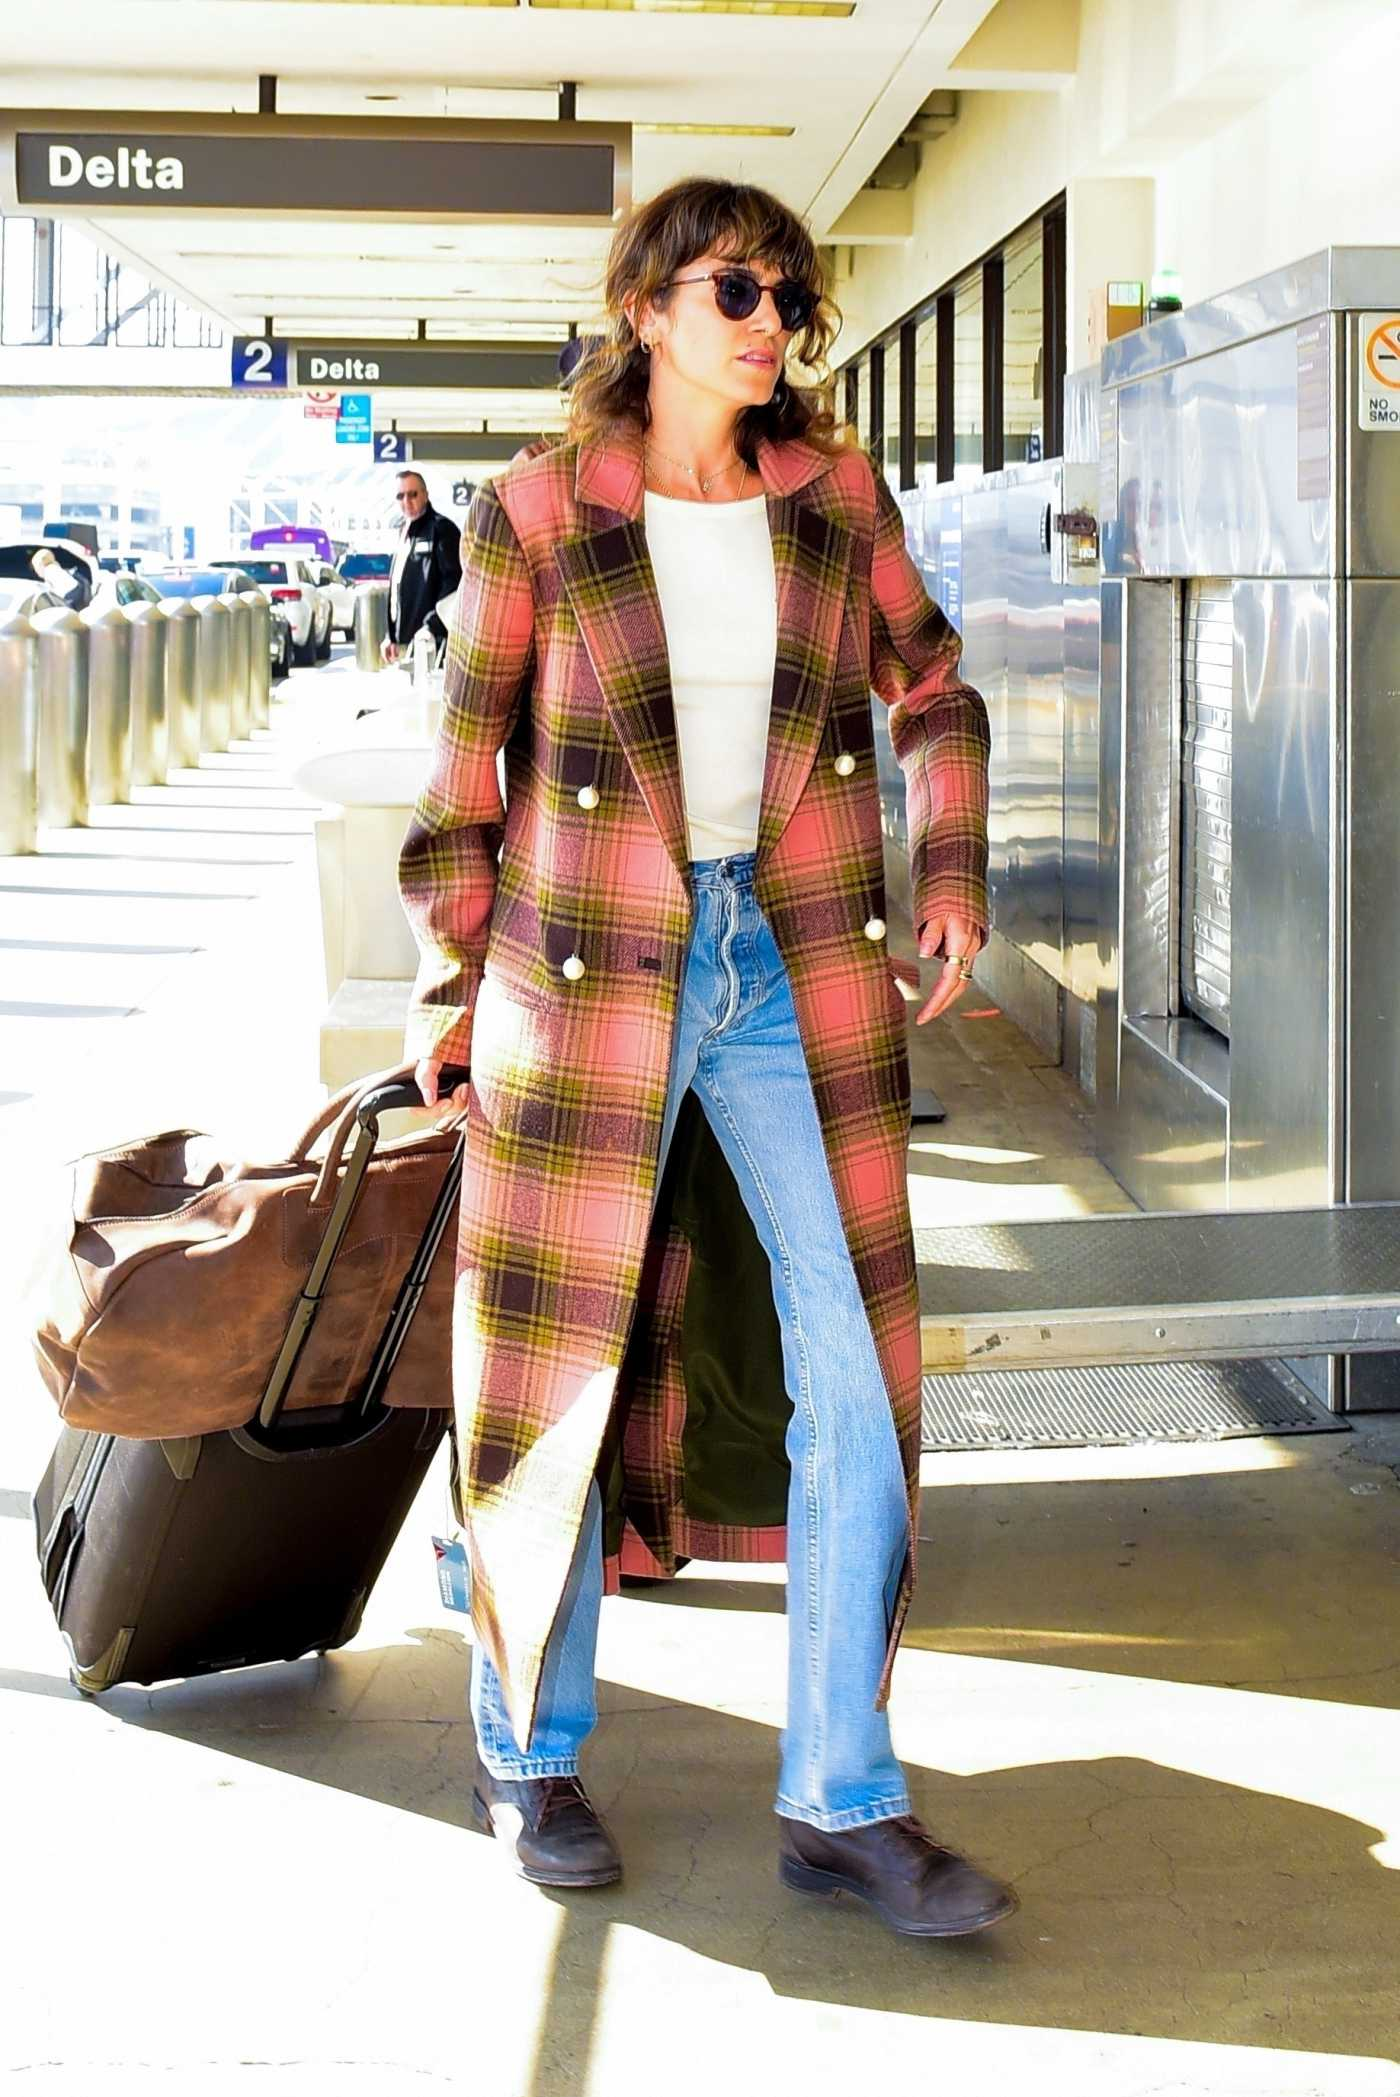 Nikki Reed in a Plaid Coat Arrives at LAX Airport in LA 11/12/2019